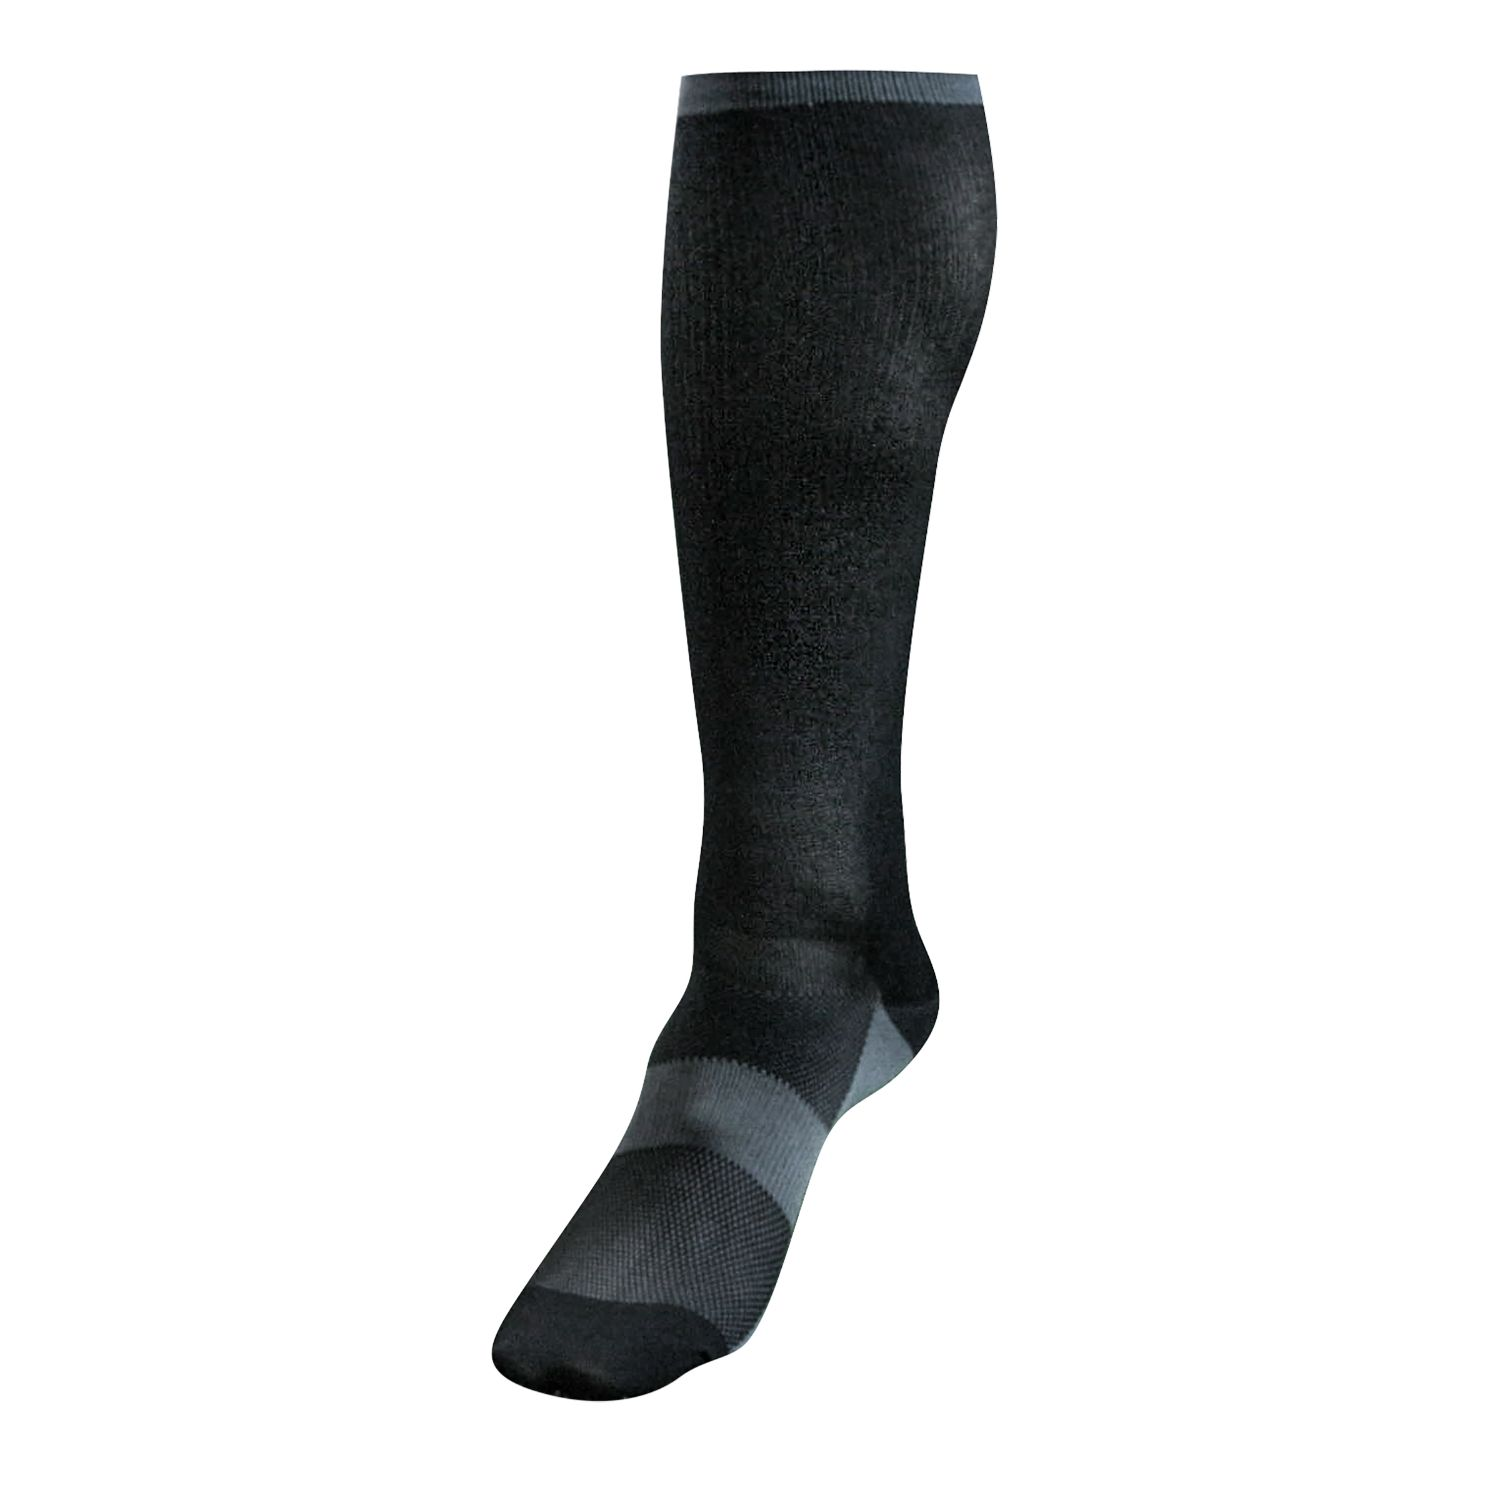 Champro Skate Baselayer Hockey Sock Black Large